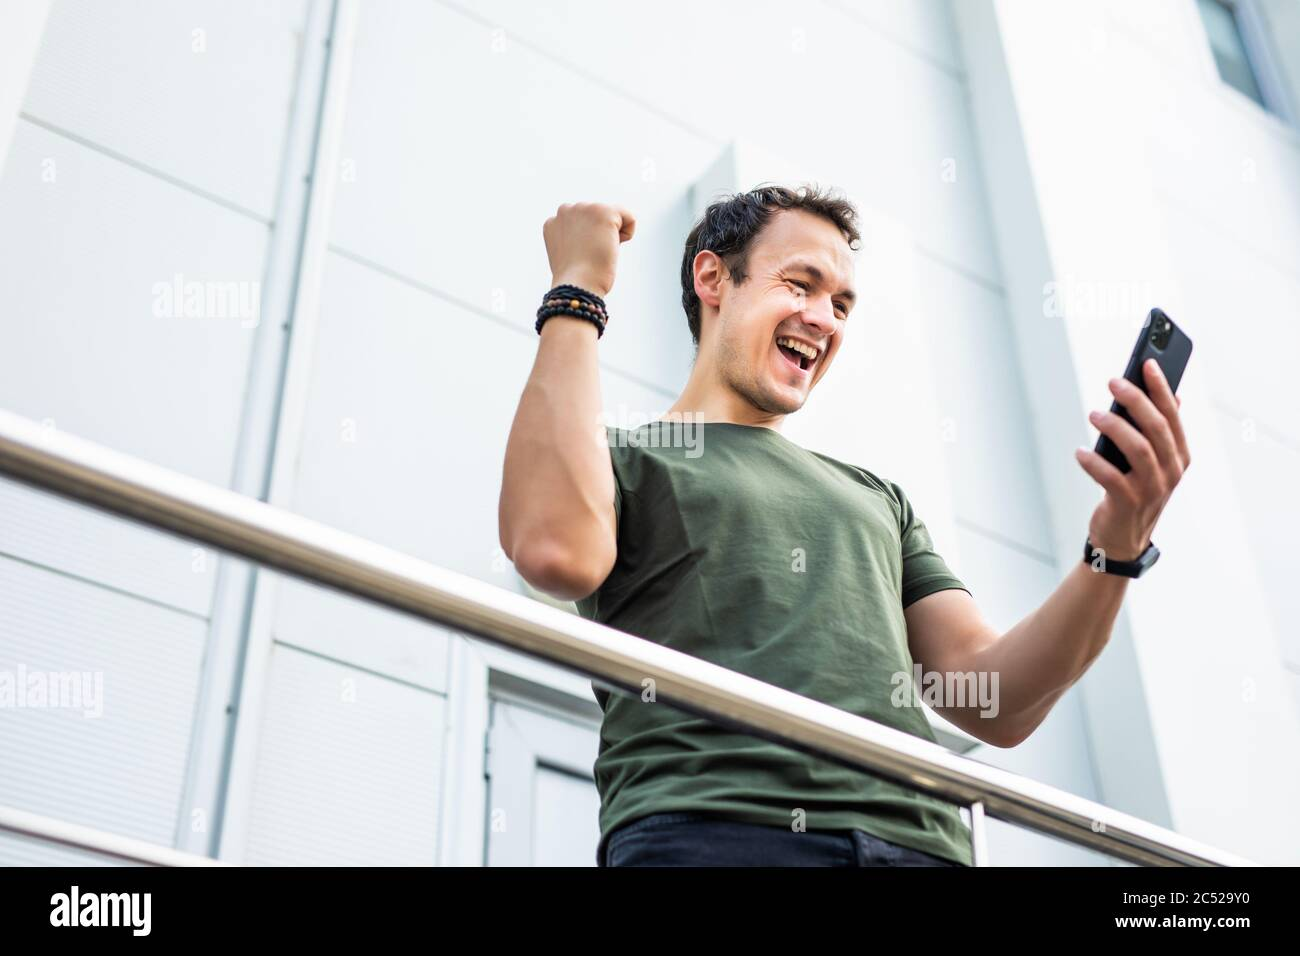 Surprised man holding phone looking at phone shocked by unexpected social media news. Astonished young man amazed stunned by mobile online content out Stock Photo